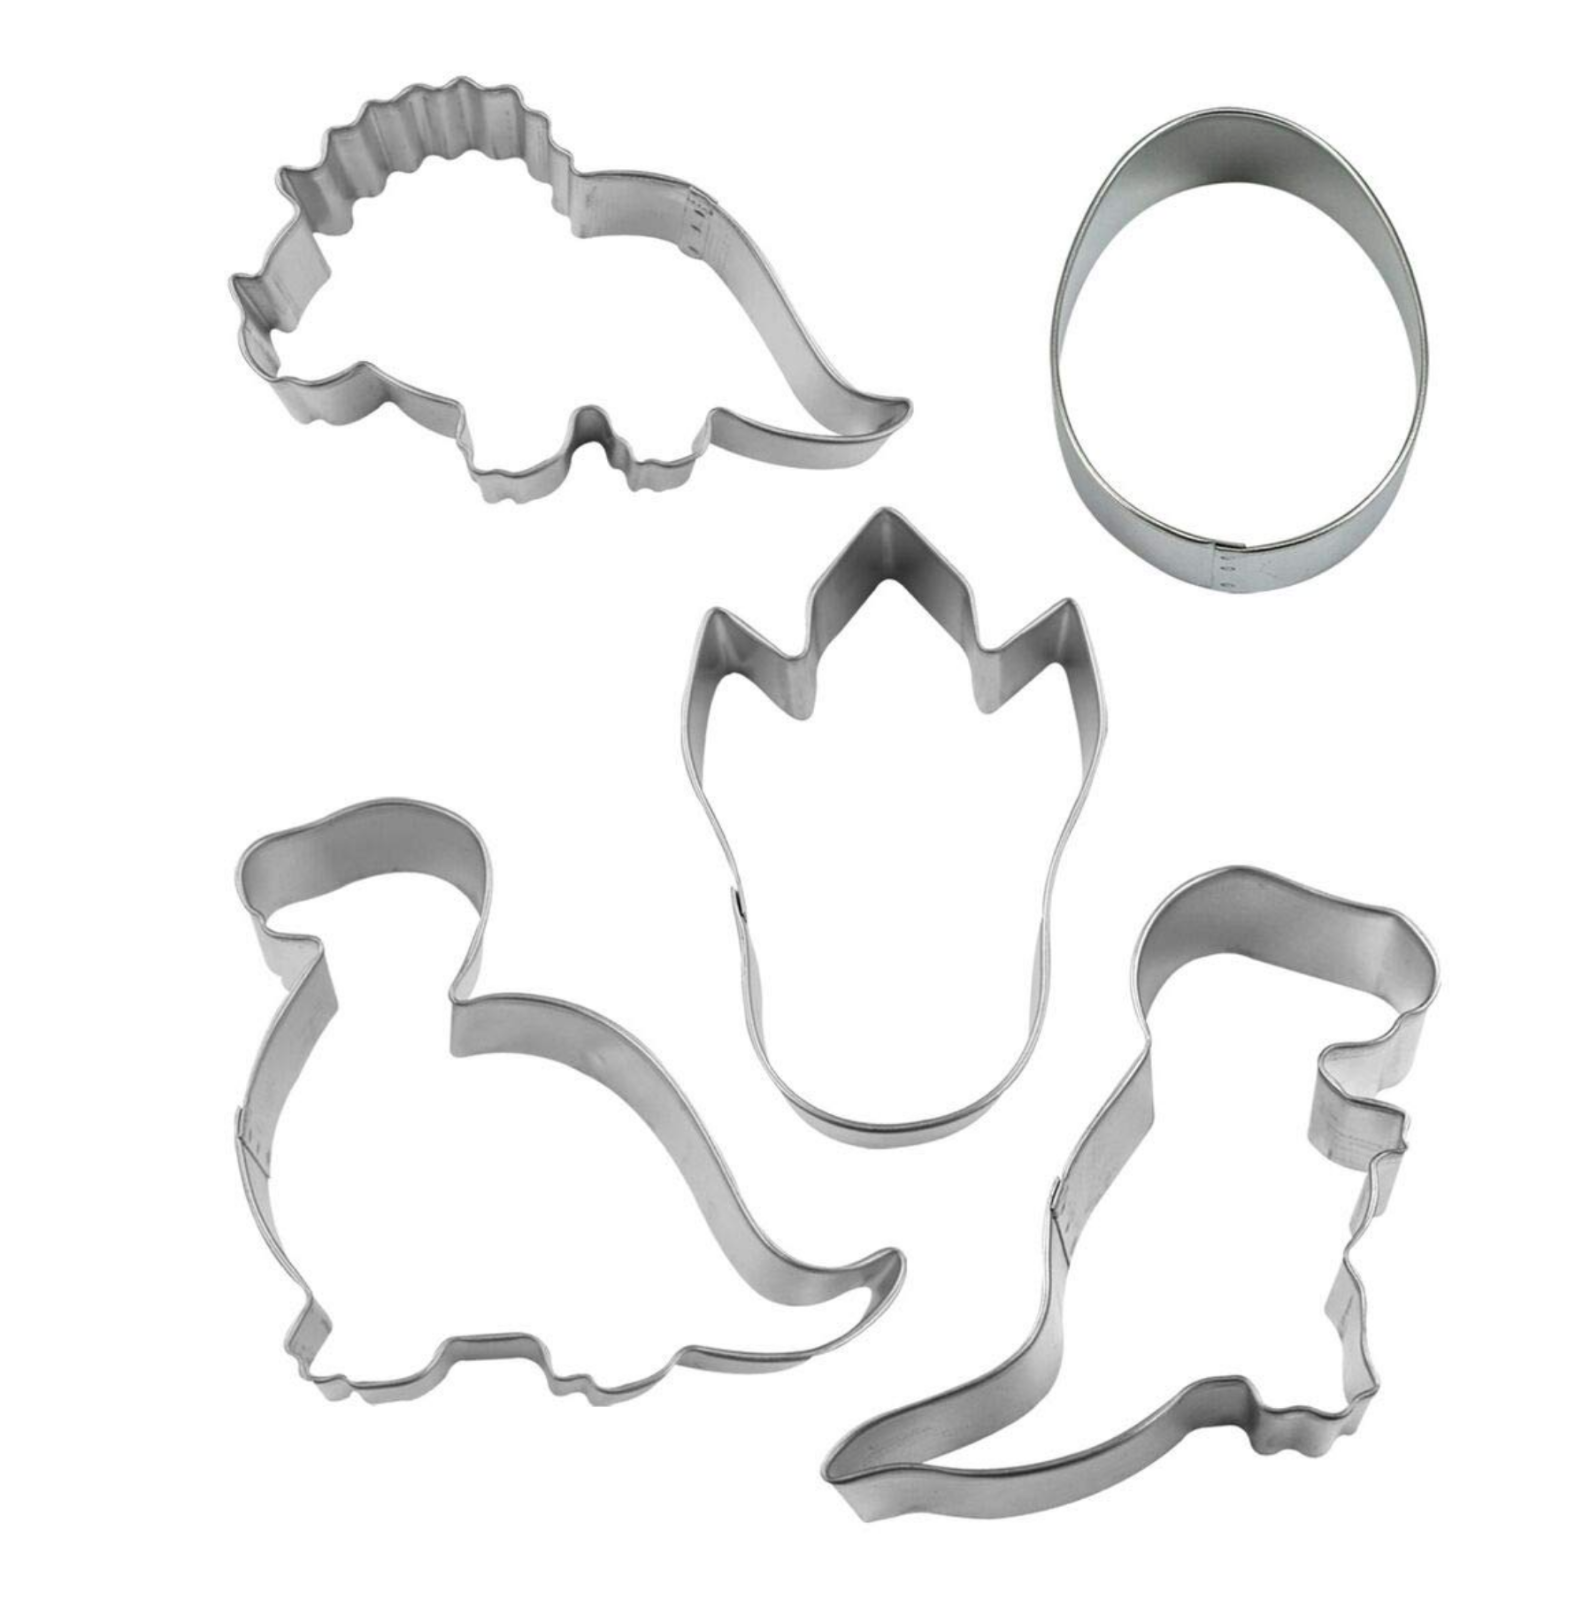 R & M International 5176 Dinosaur, 5 Pieces Cookie Cutter, Silver NEW in Box FS! image 2